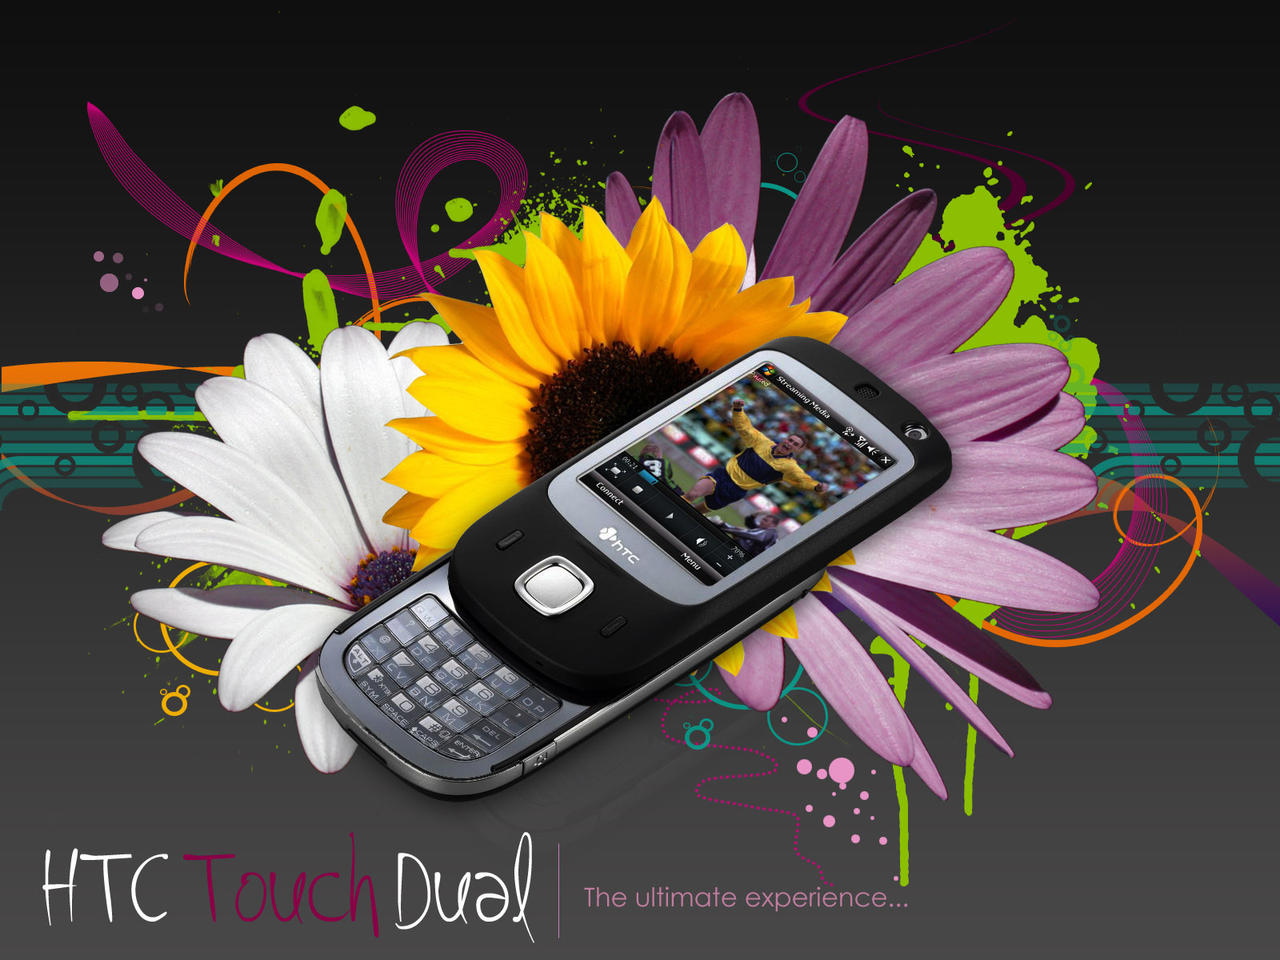 HTC Touch wallpaper by ~simoner on deviantART